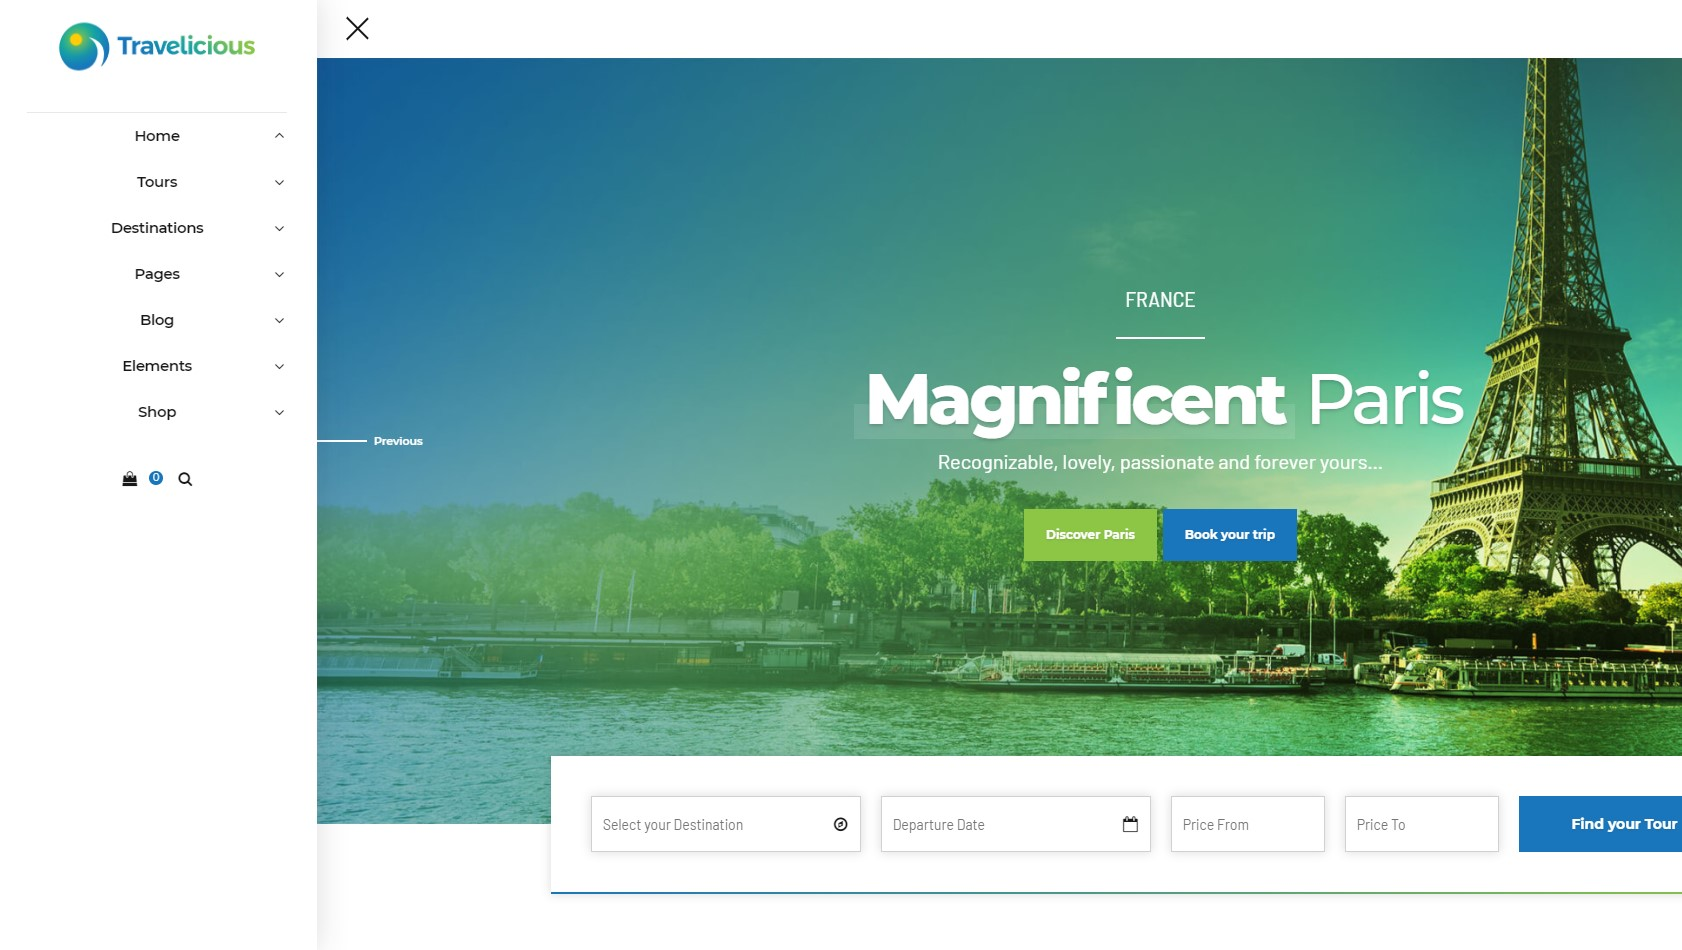 http://documentation.bold-themes.com/travelicious/wp-content/uploads/sites/37/2018/10/menu-vertical-left.jpg